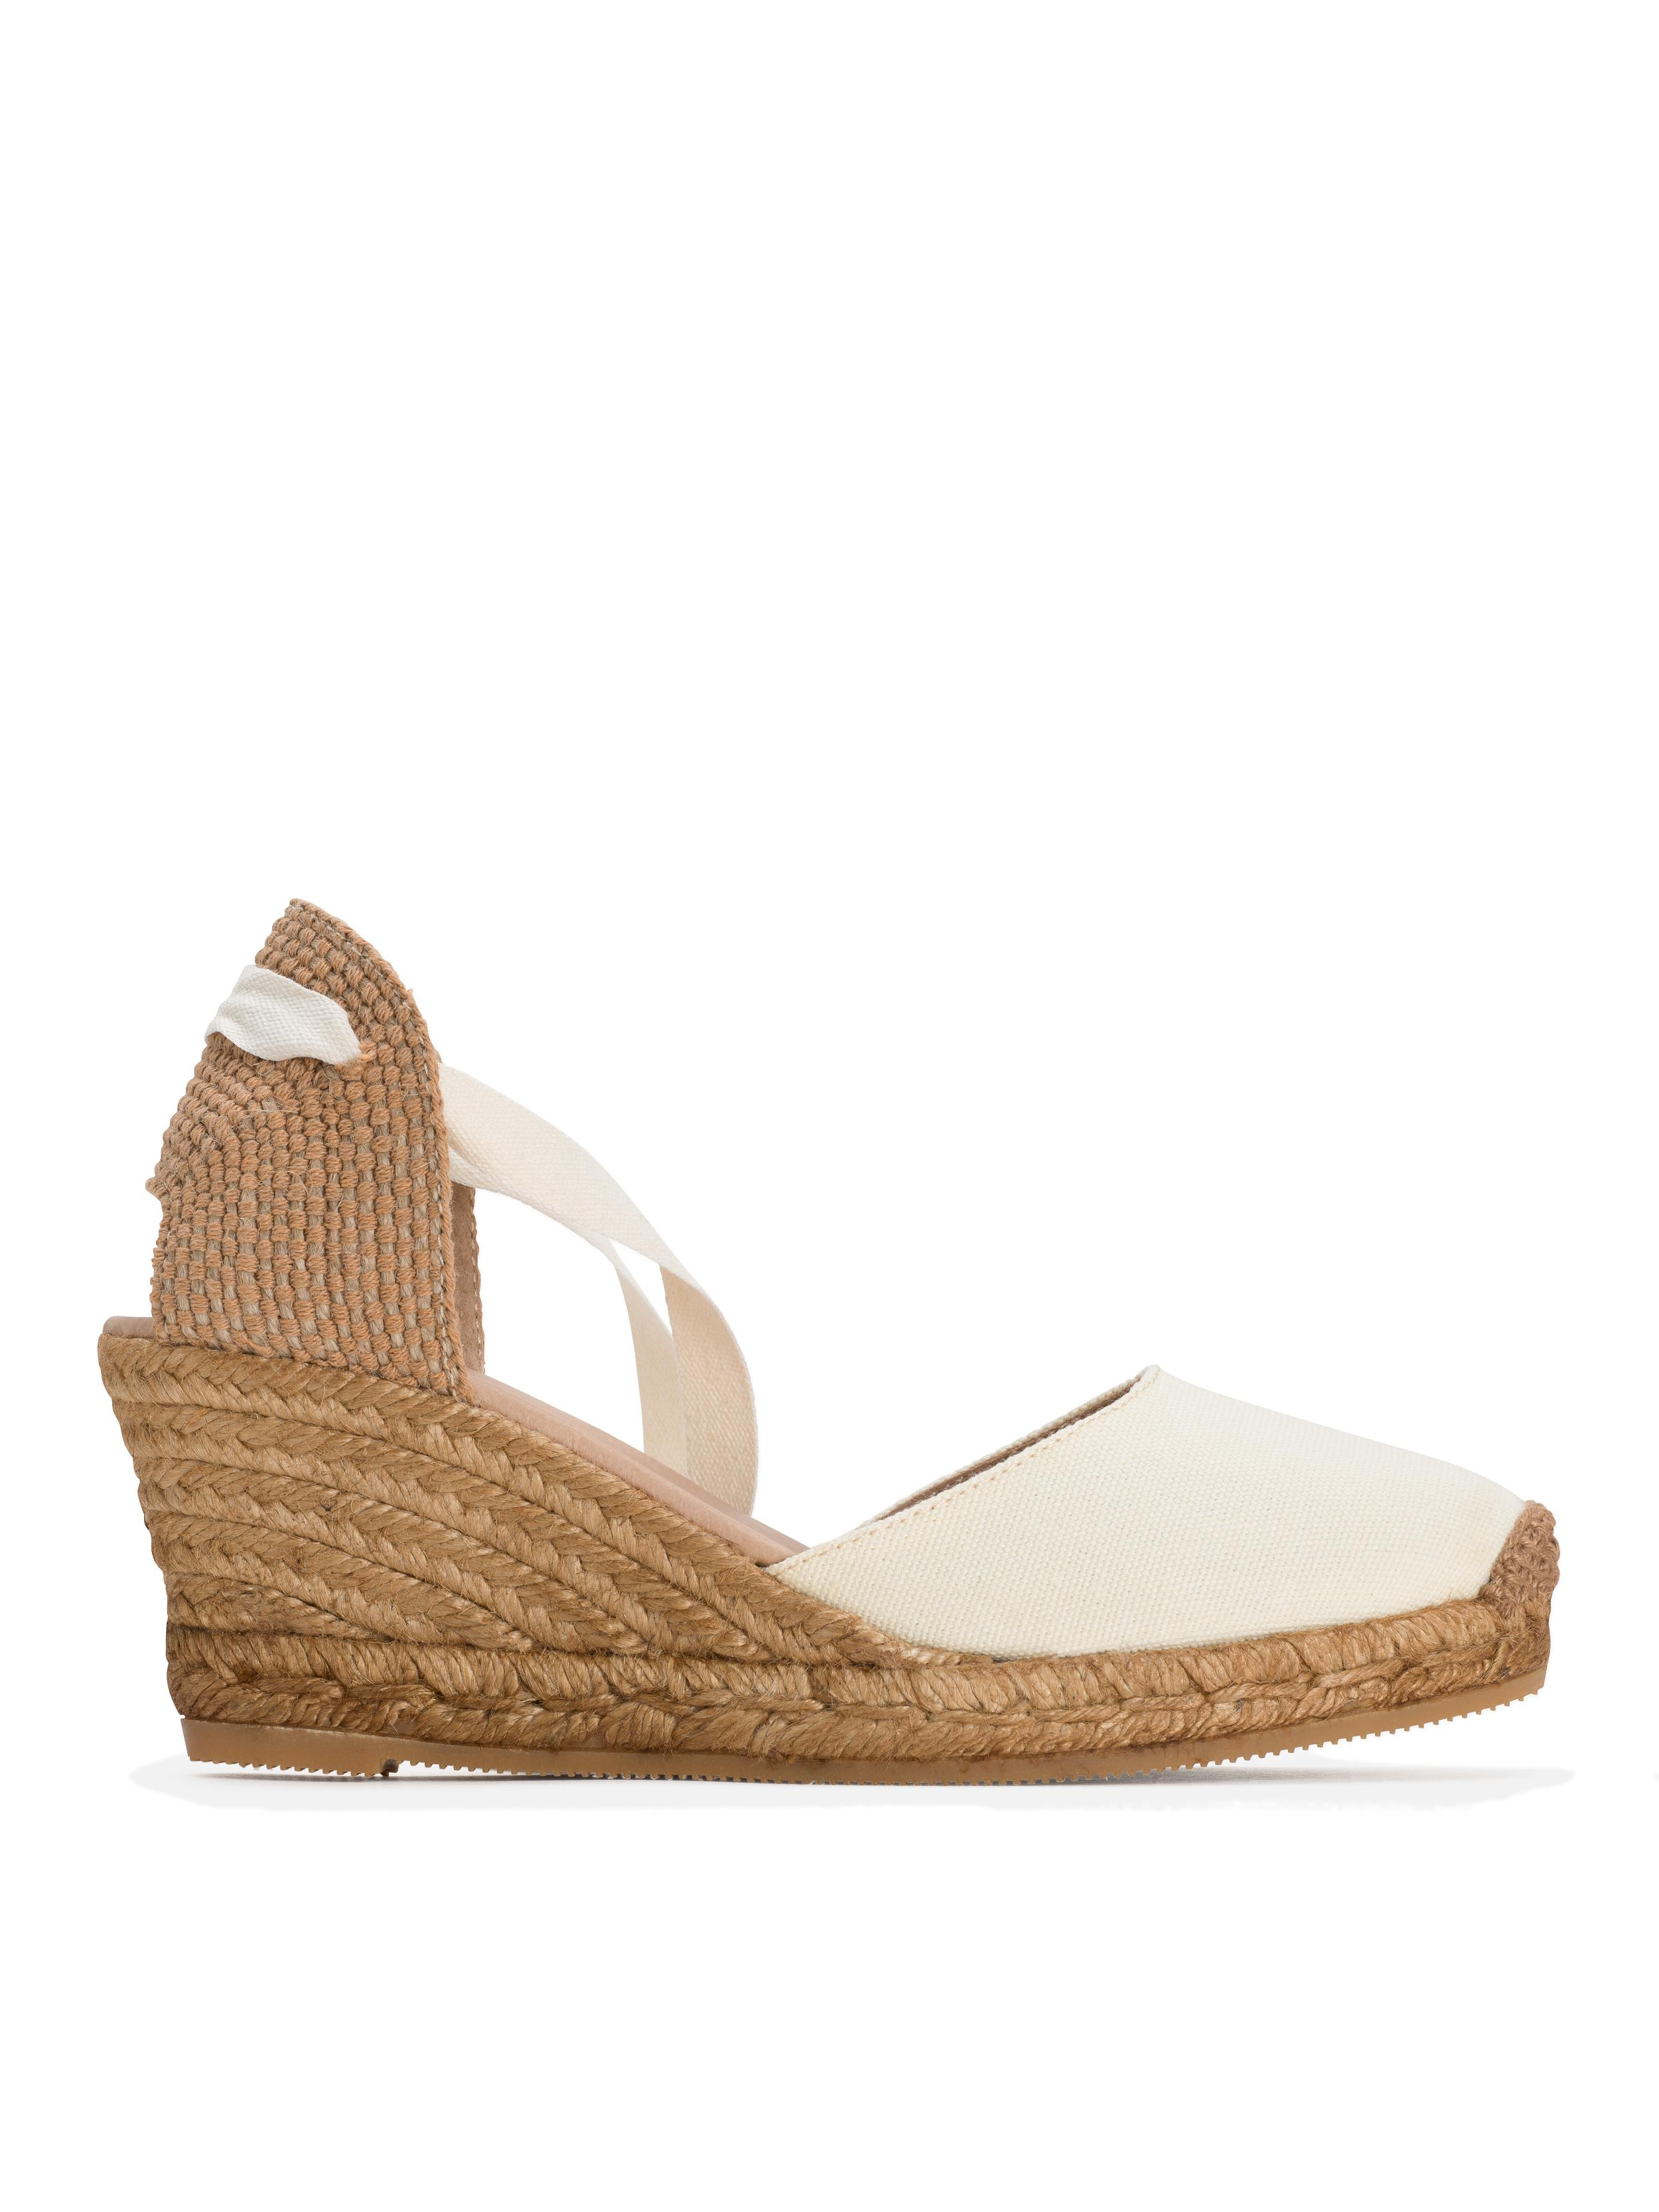 b1257bc1988 Lyst - agnès b. Beige Penelope Wedge Espadrille Shoes in Natural